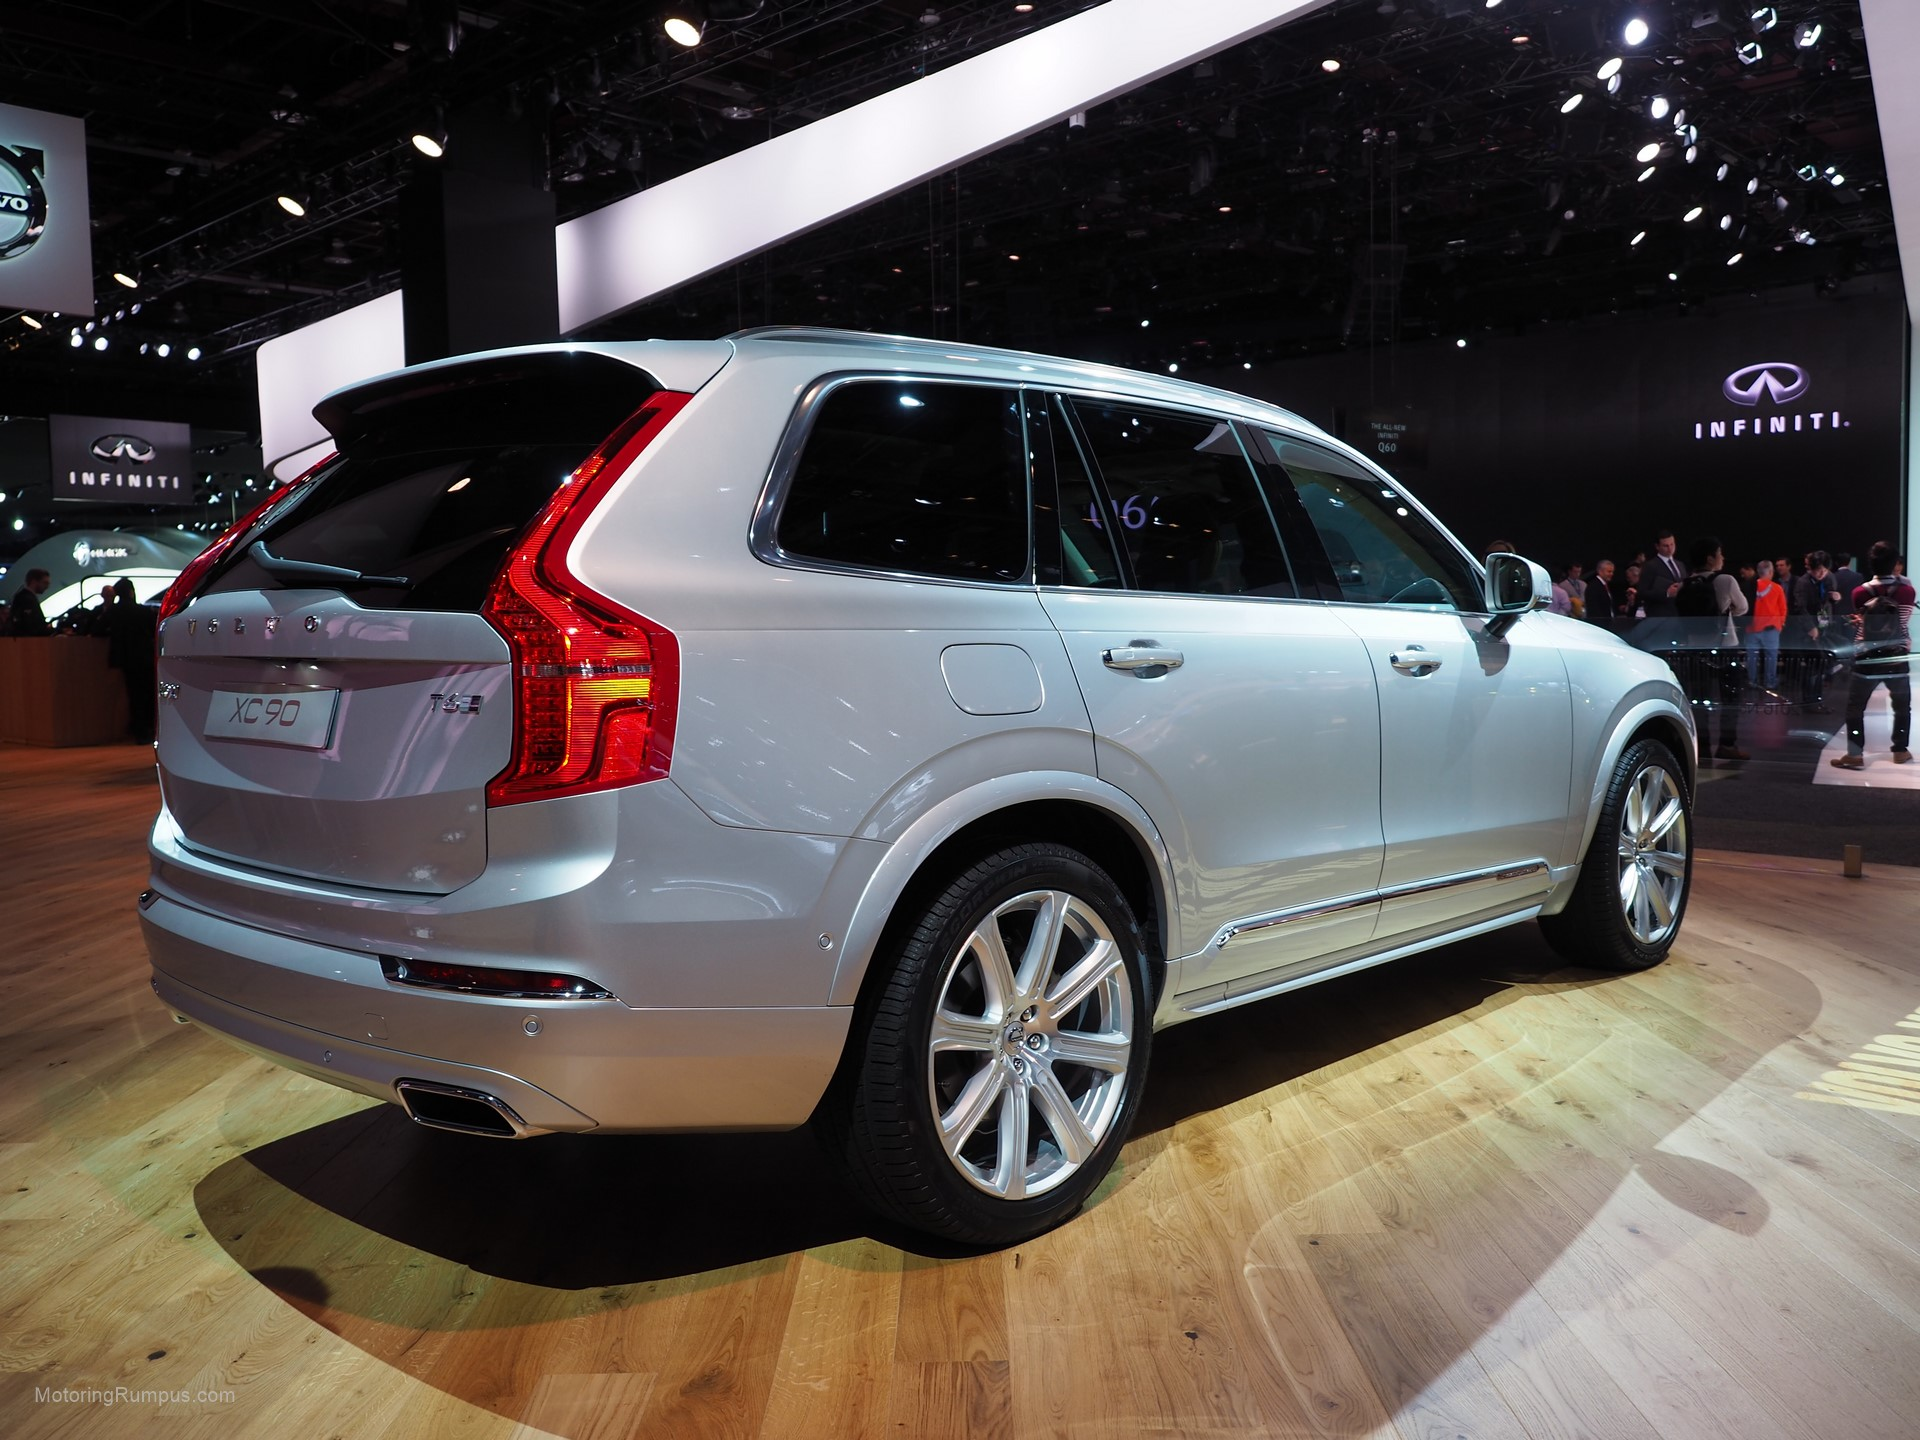 2016 naias volvo xc90 t6 inscription rear motoring rumpus. Black Bedroom Furniture Sets. Home Design Ideas